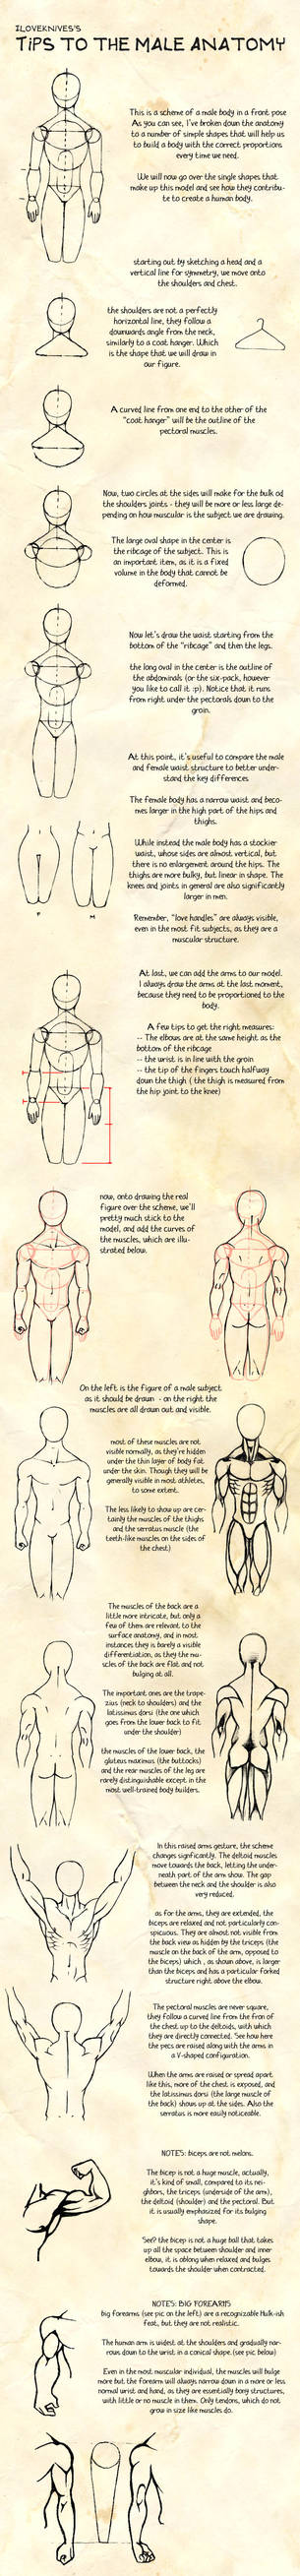 tips - male anatomy